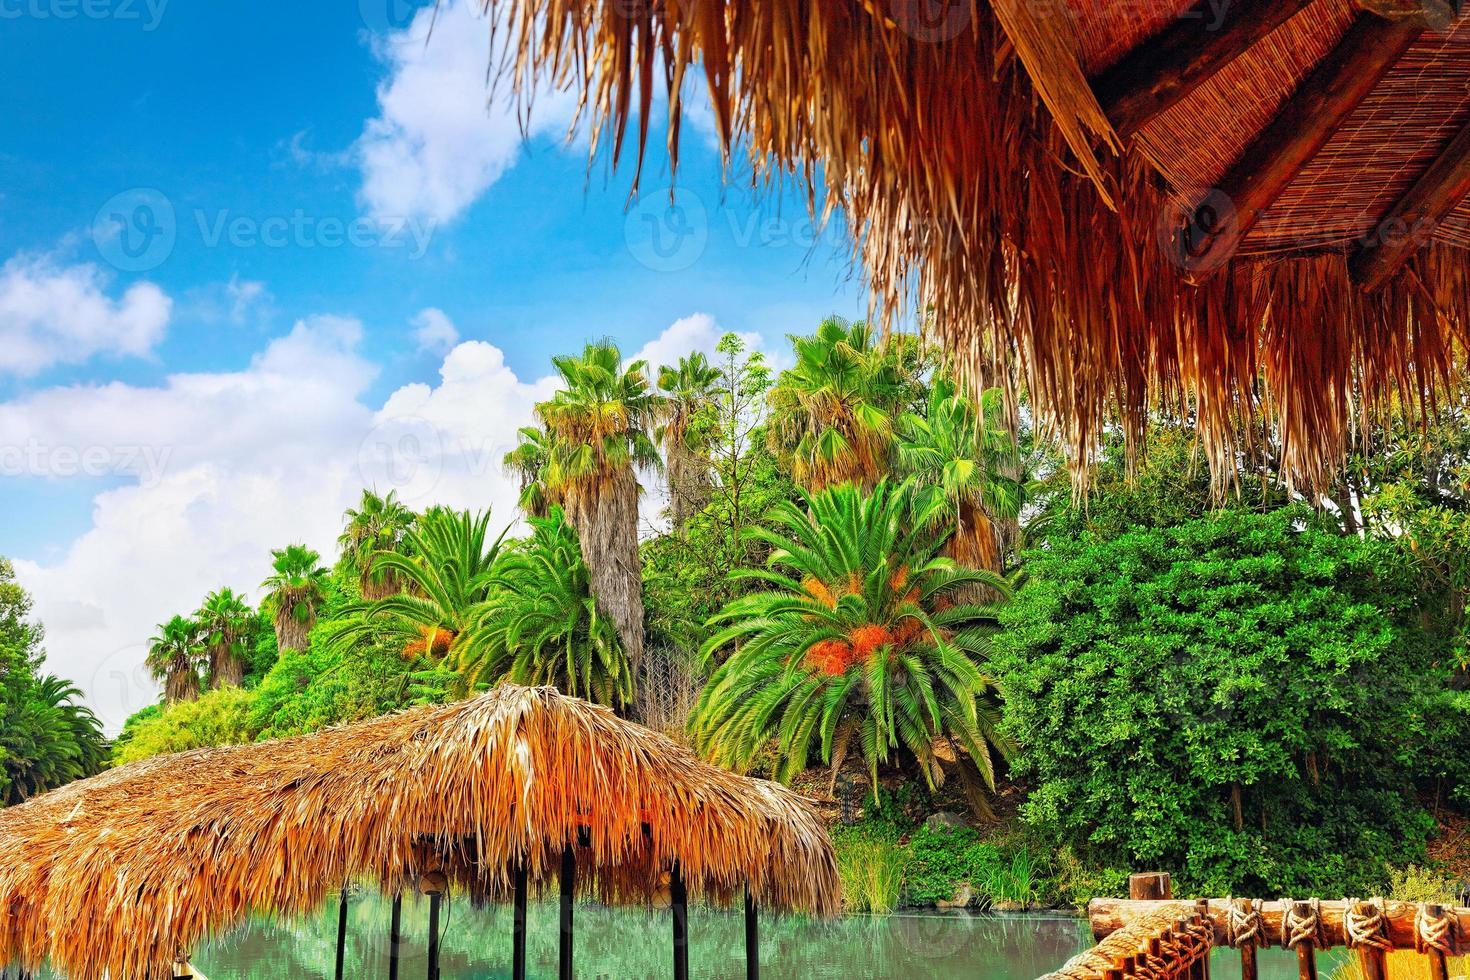 beau paysage de jungle tropicale humide. photo